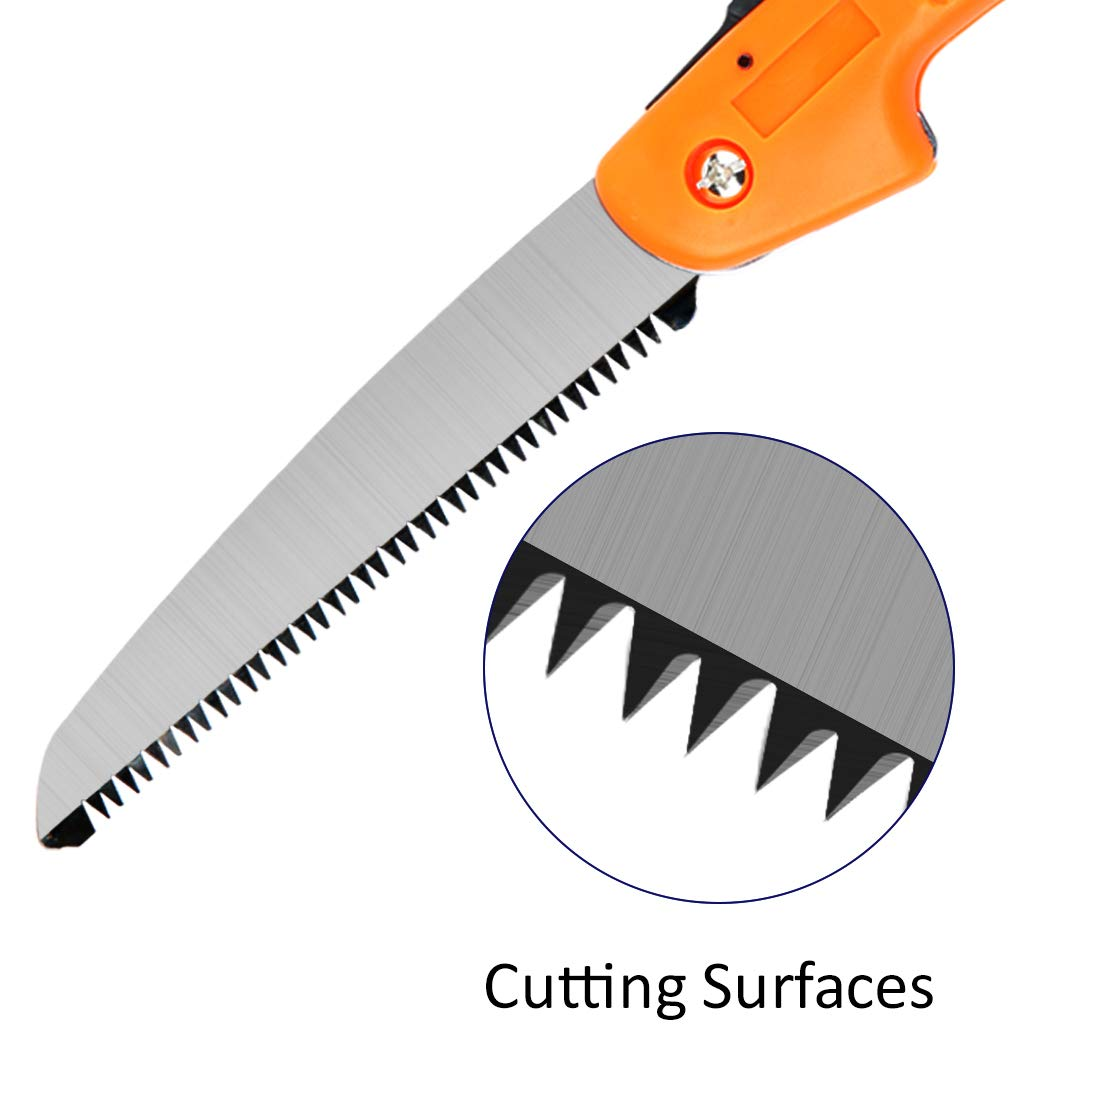 HARVET Folding Hand Saw,7 Inch Blade, Perfect for Wood, Bone, PVC, Tree Pruning, Camping, Hunting by HARVET